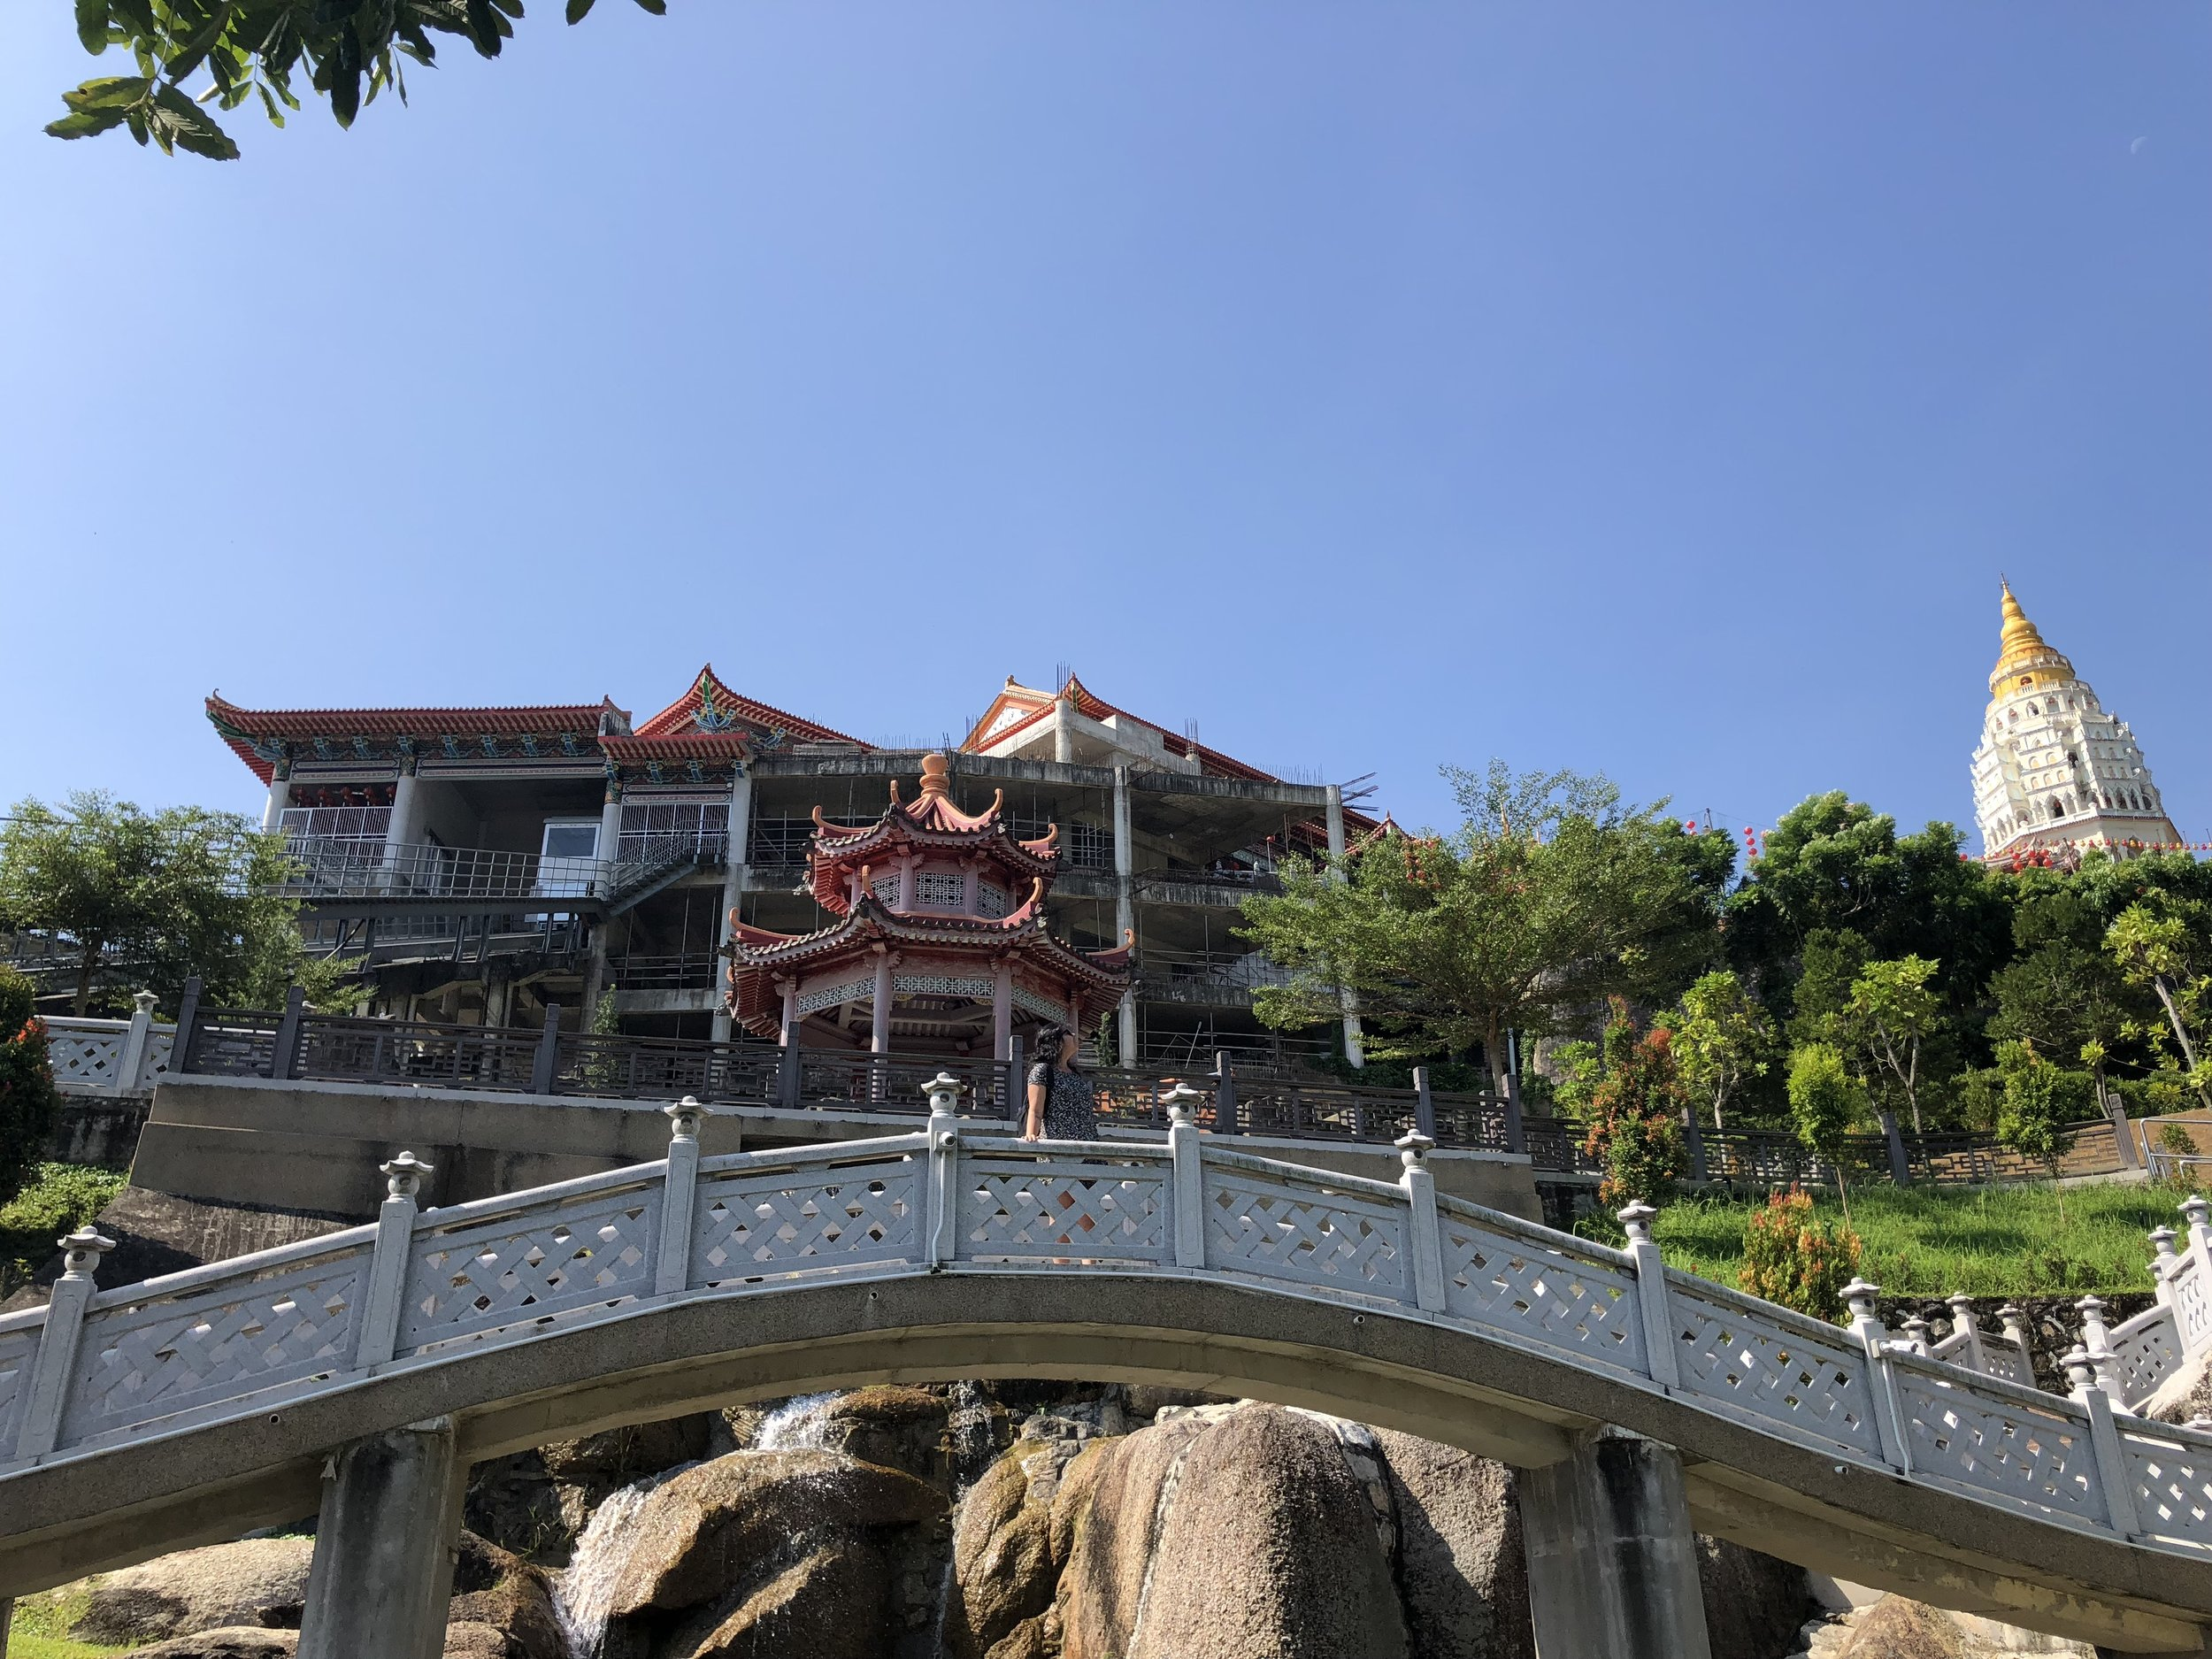 A bridge over a pond of turtles at the entrance of Kek Lok Si Temple. I am standing at the center of the bridge!